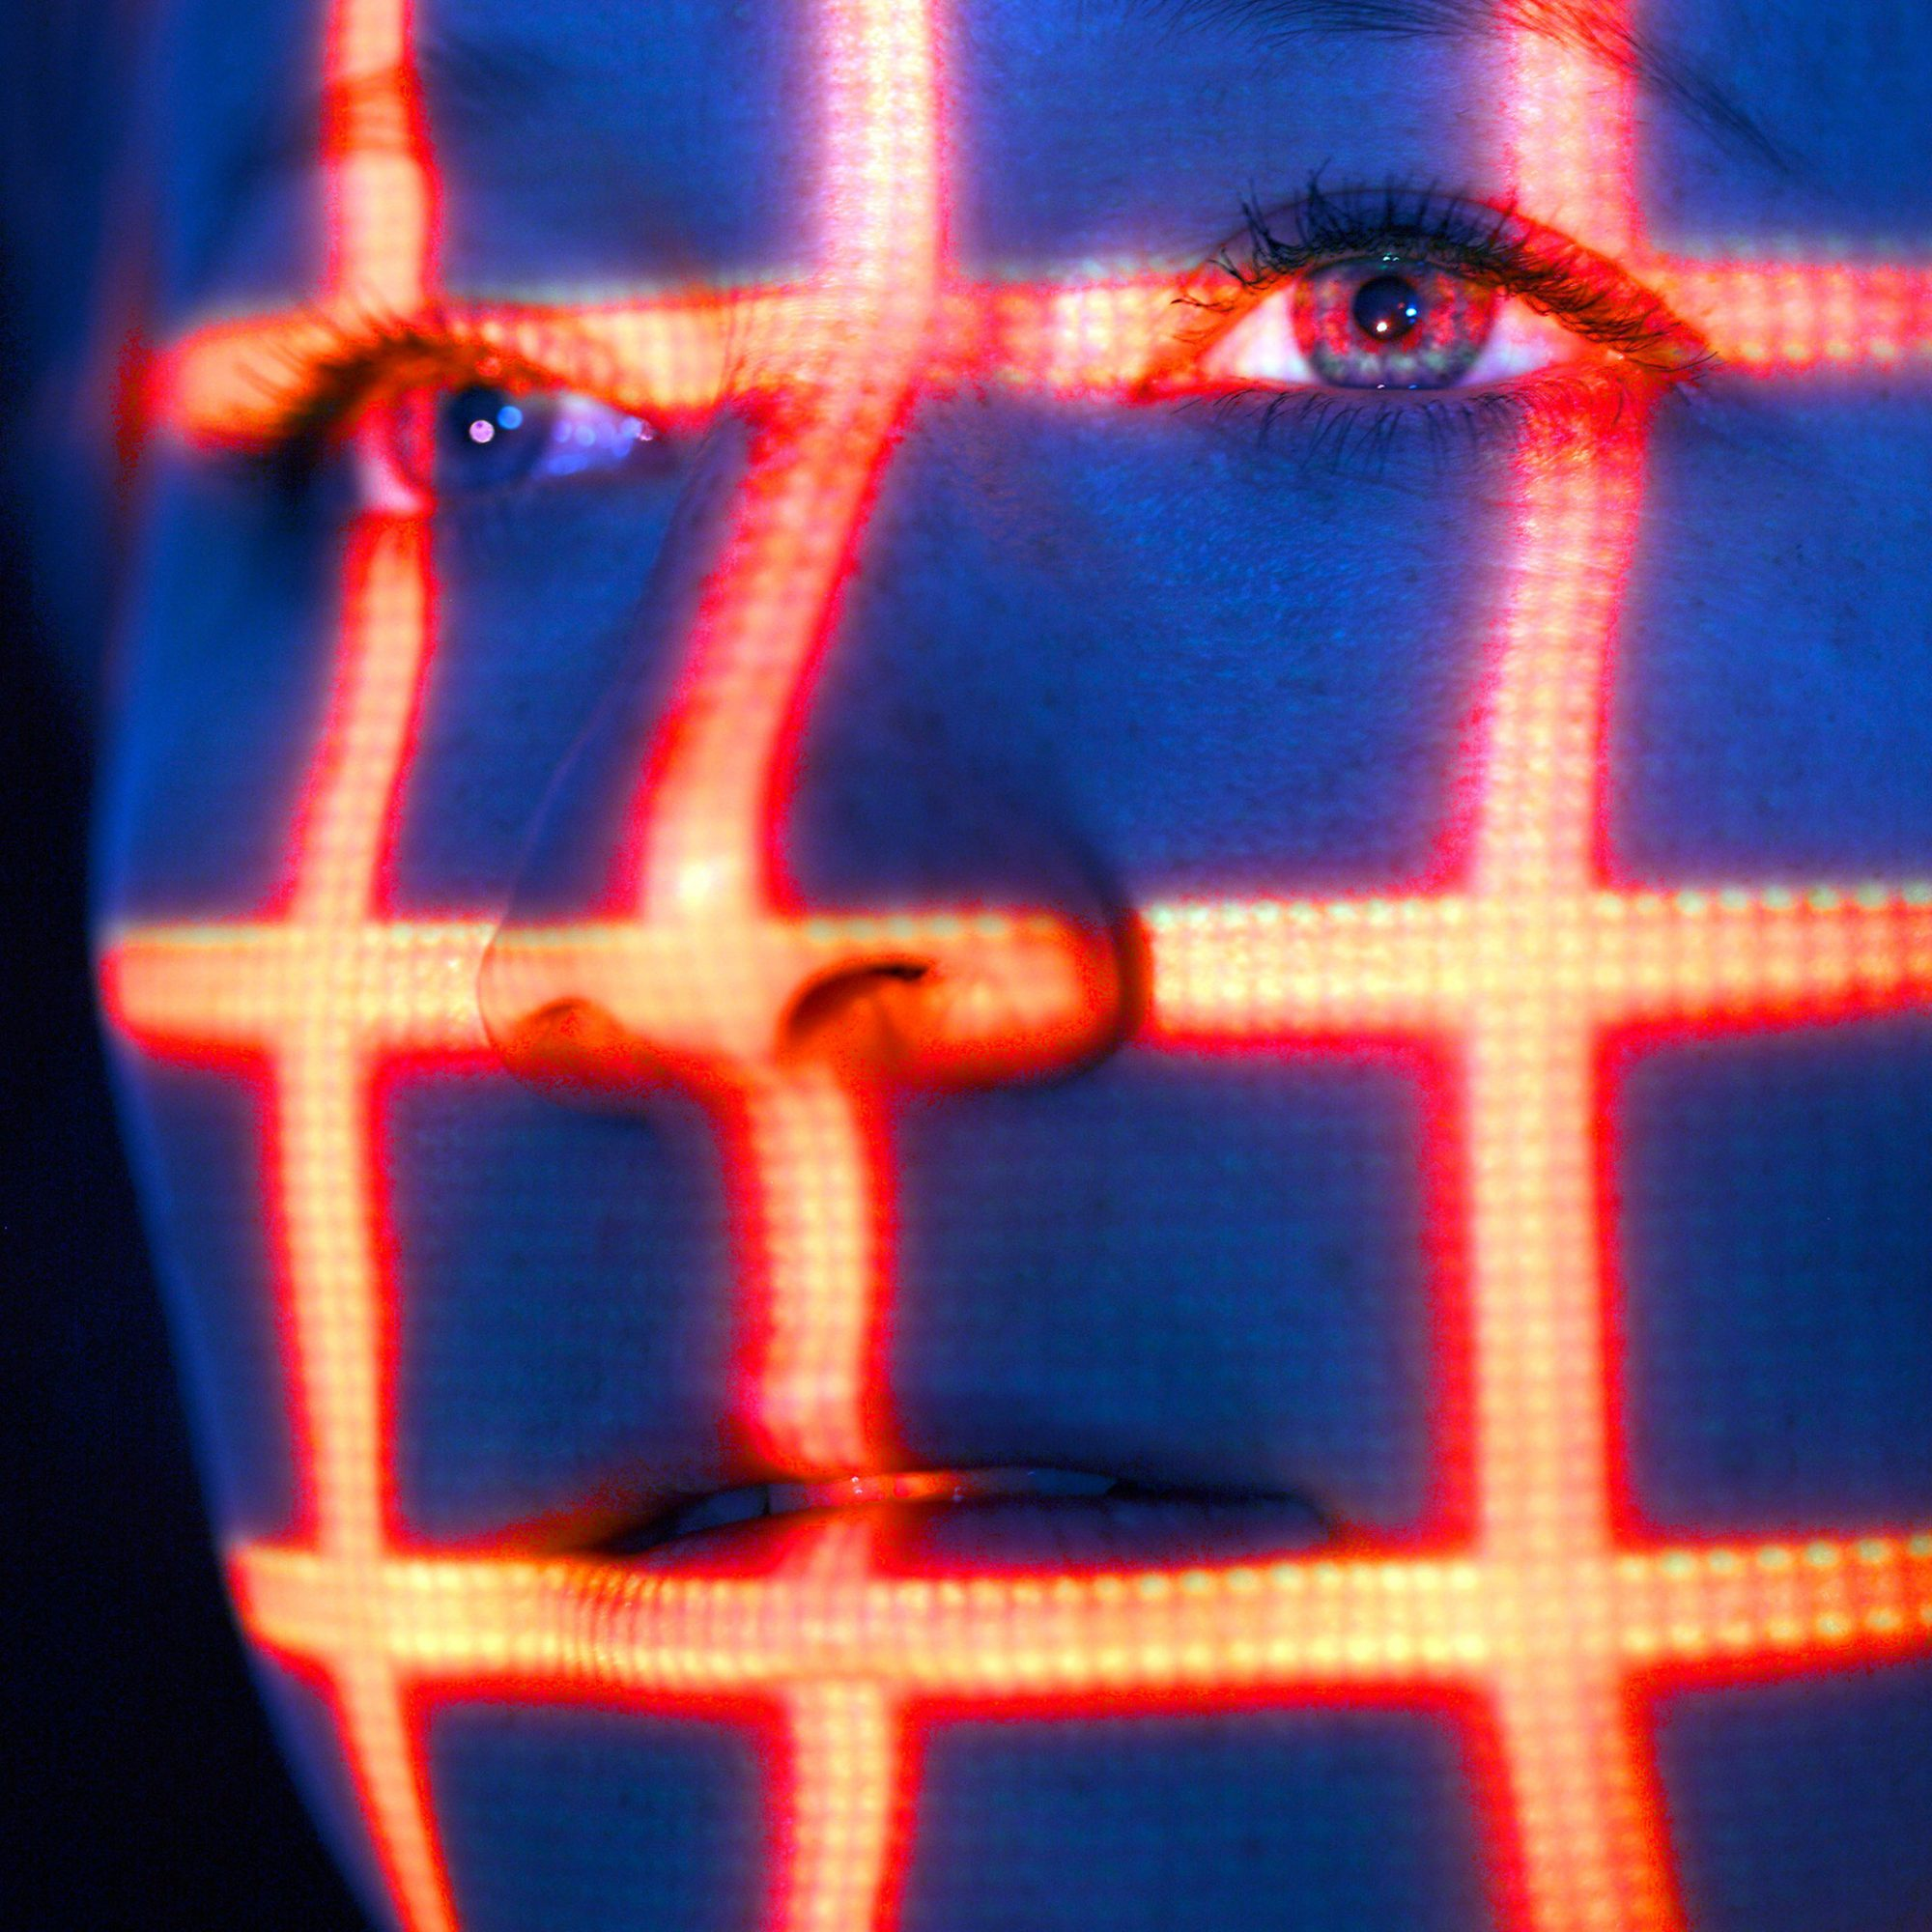 FWX PAY FOR GROCERIES WITH FACIAL RECOGNITION